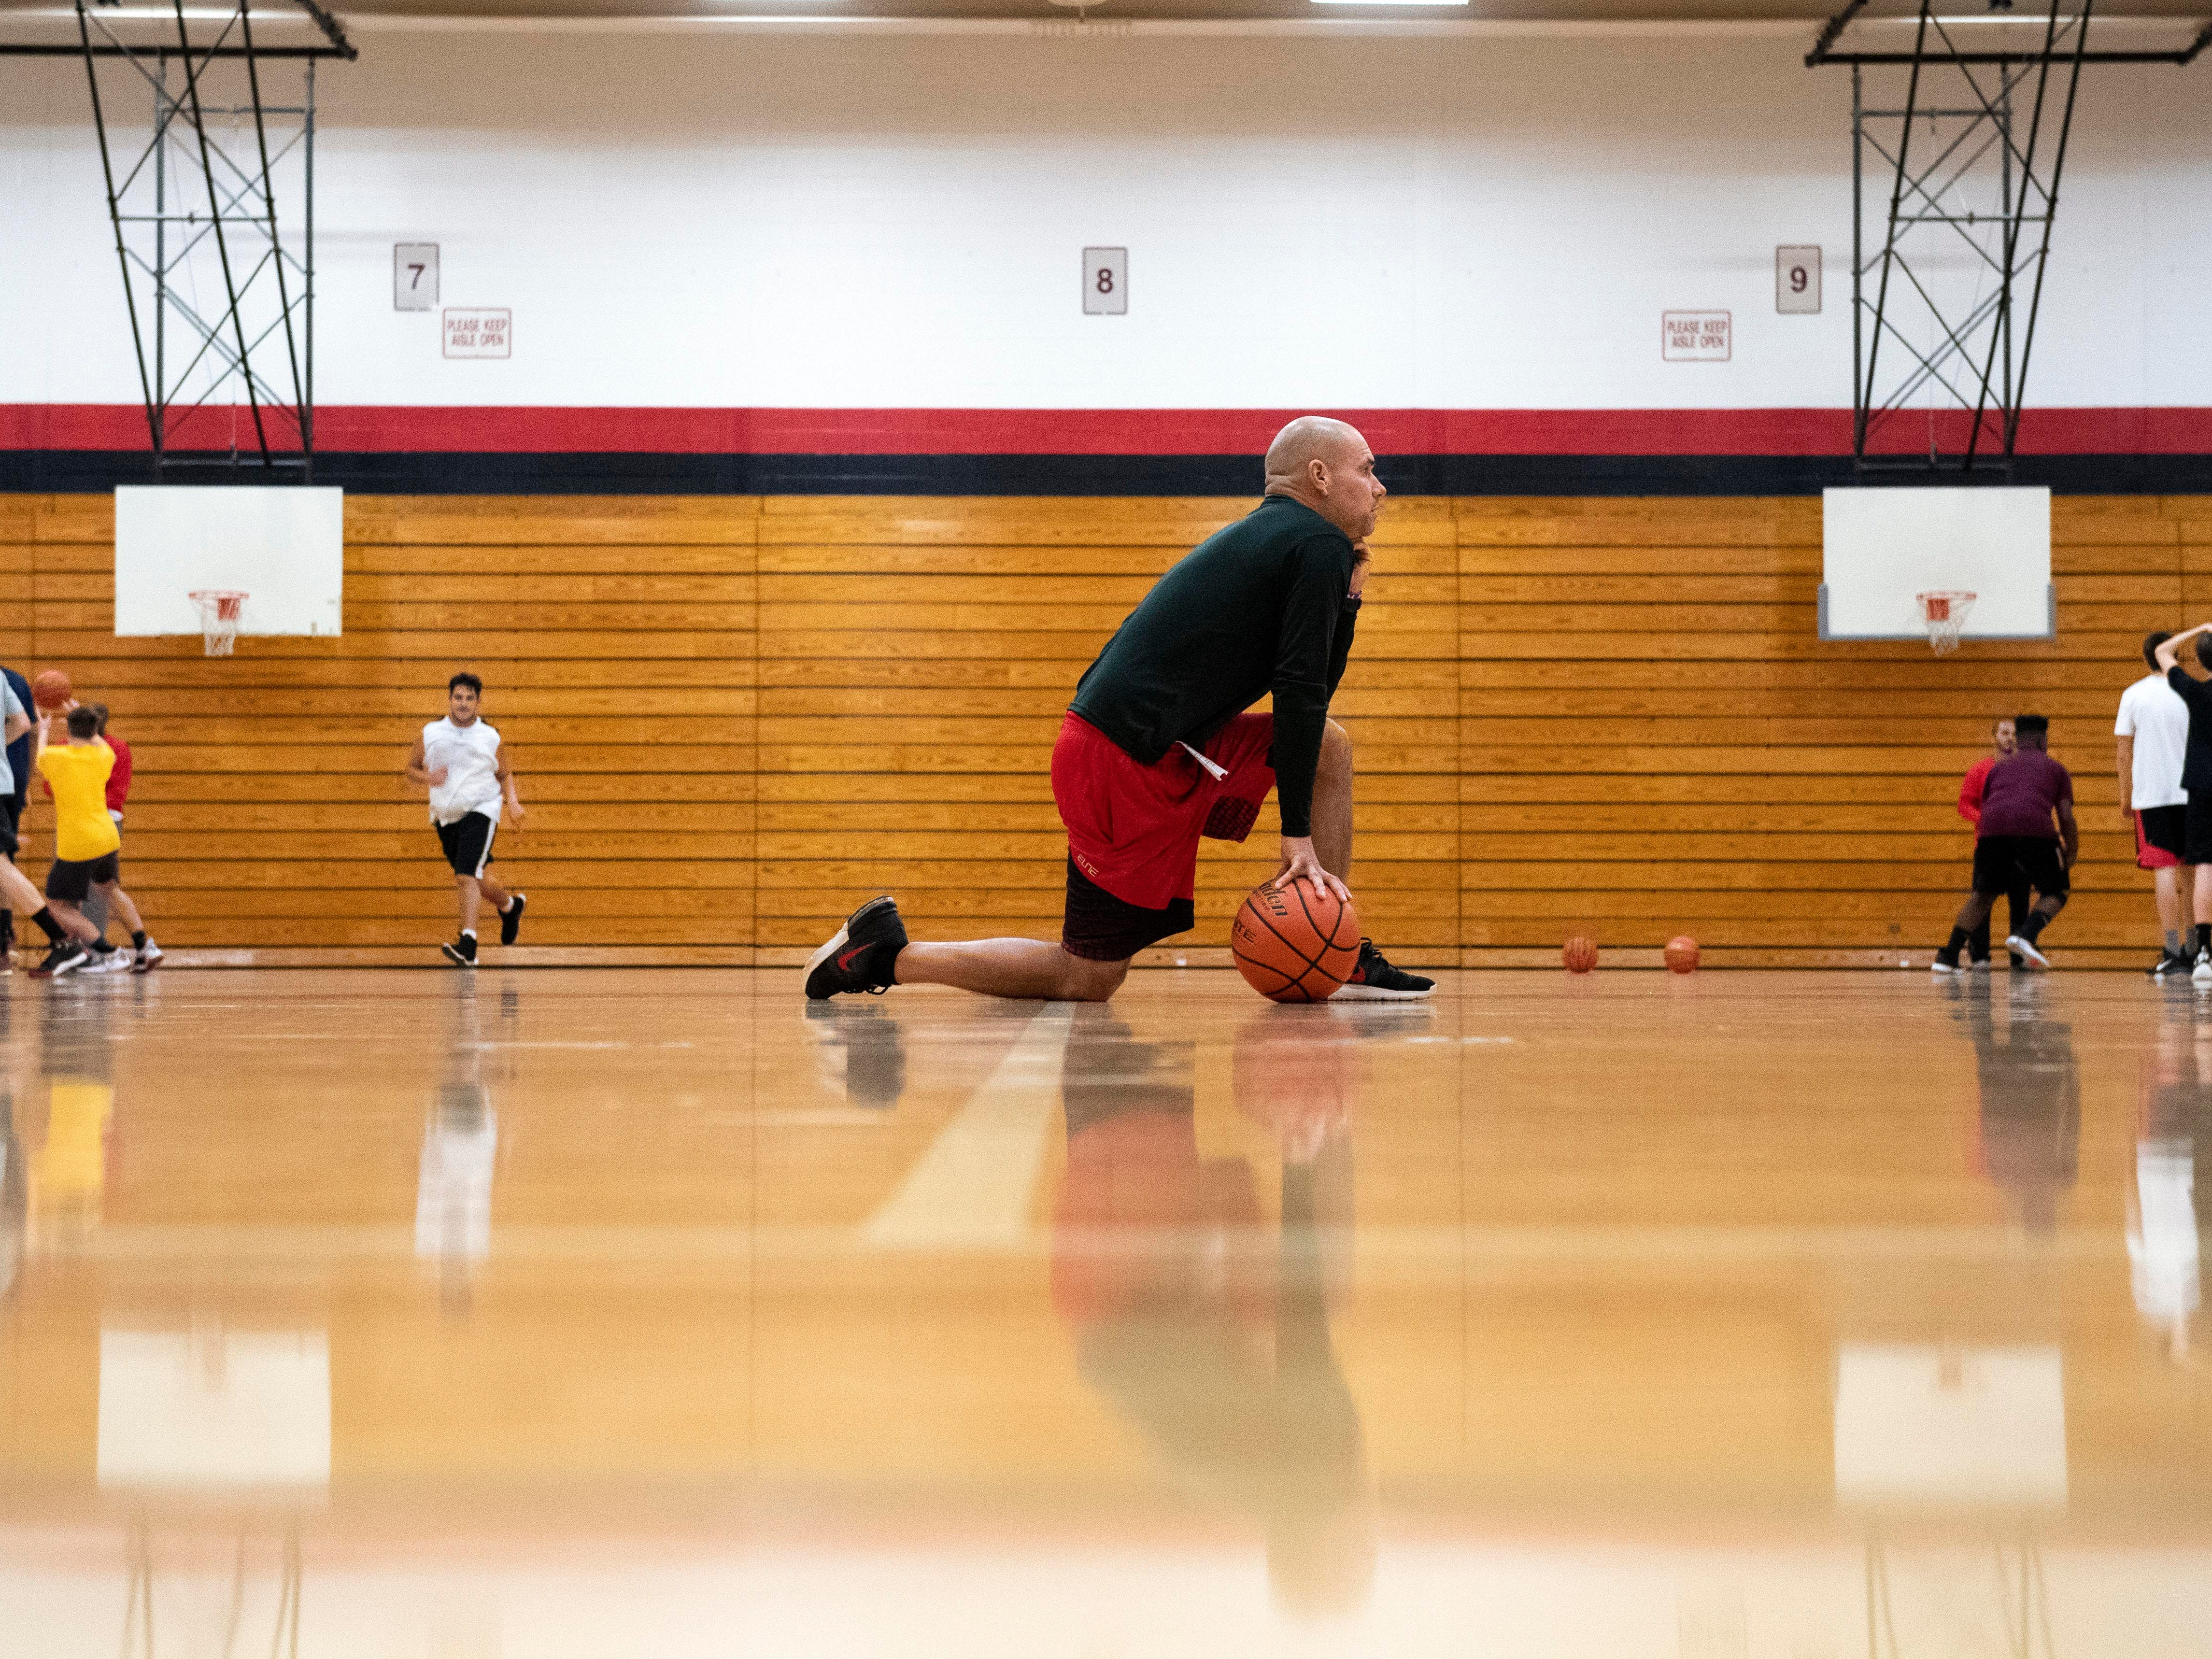 Dover boys' basketball head coach Brian Schmoyer watches practice during the first official day of winter sports practice on Friday, November 16, 2018.